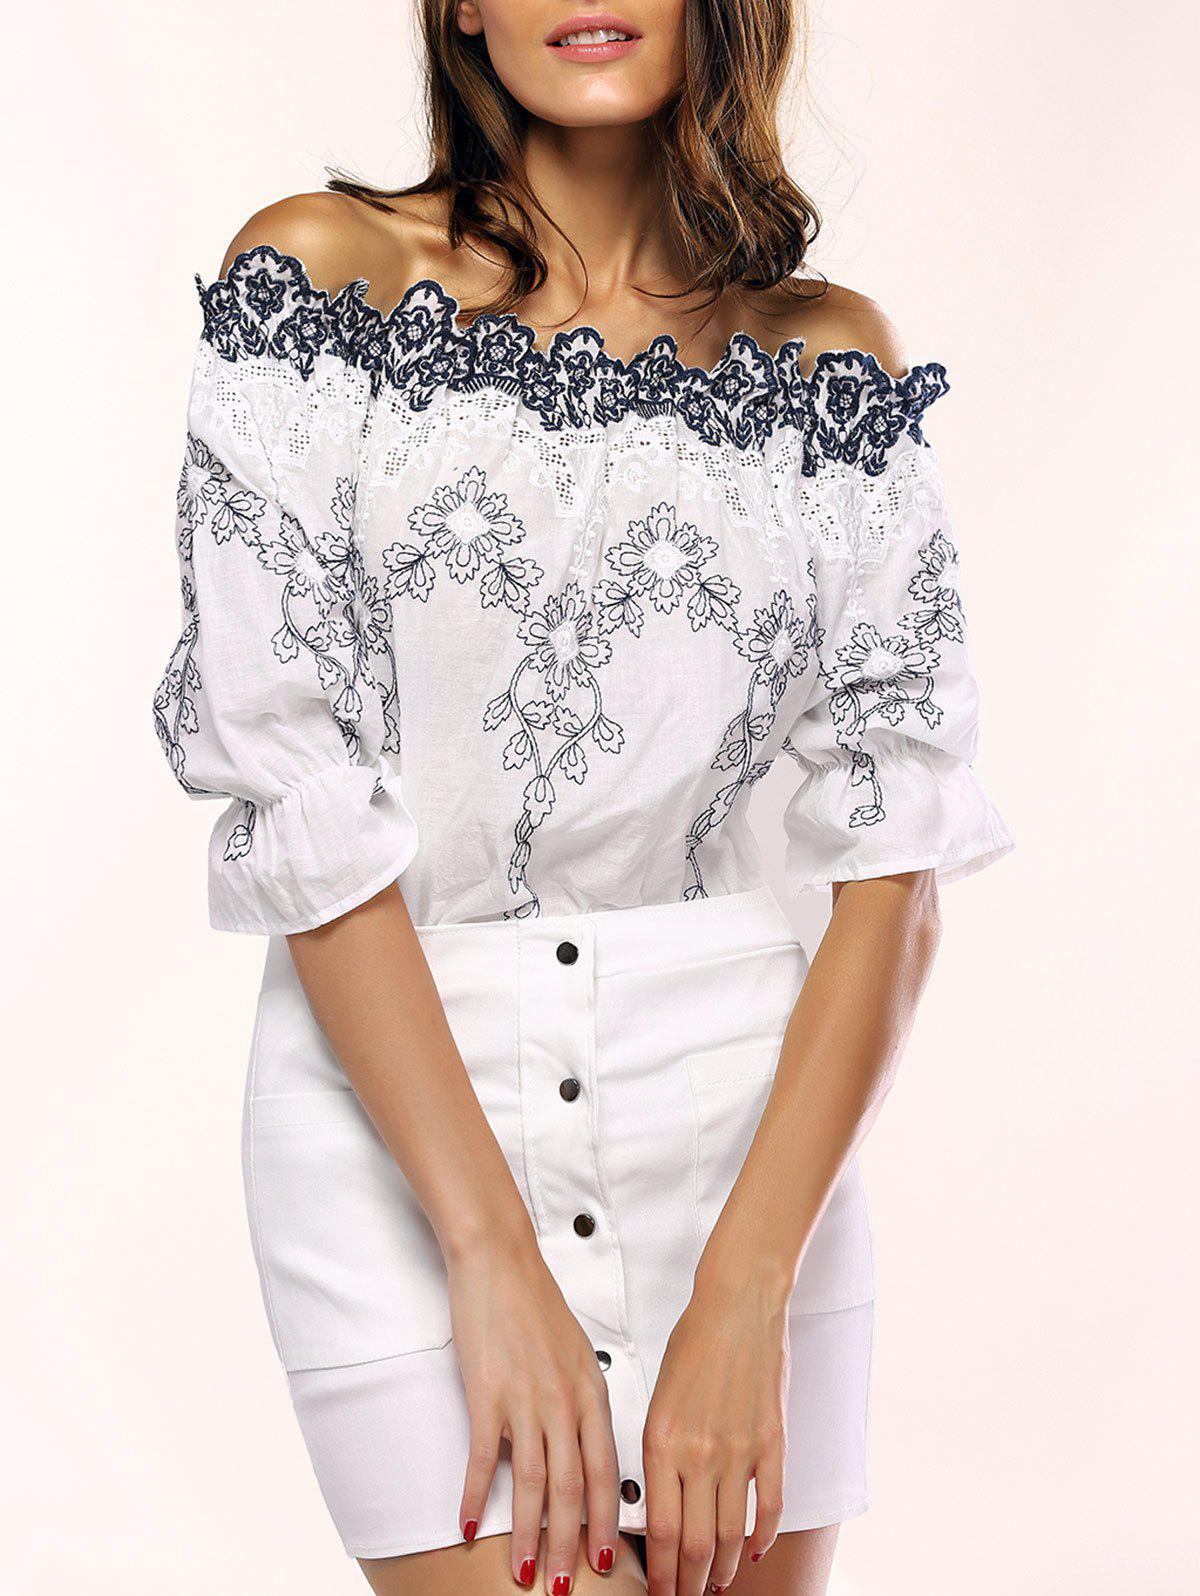 Charming Embroidered Blouse and Snap Buttoned Skirt Women's Twinset